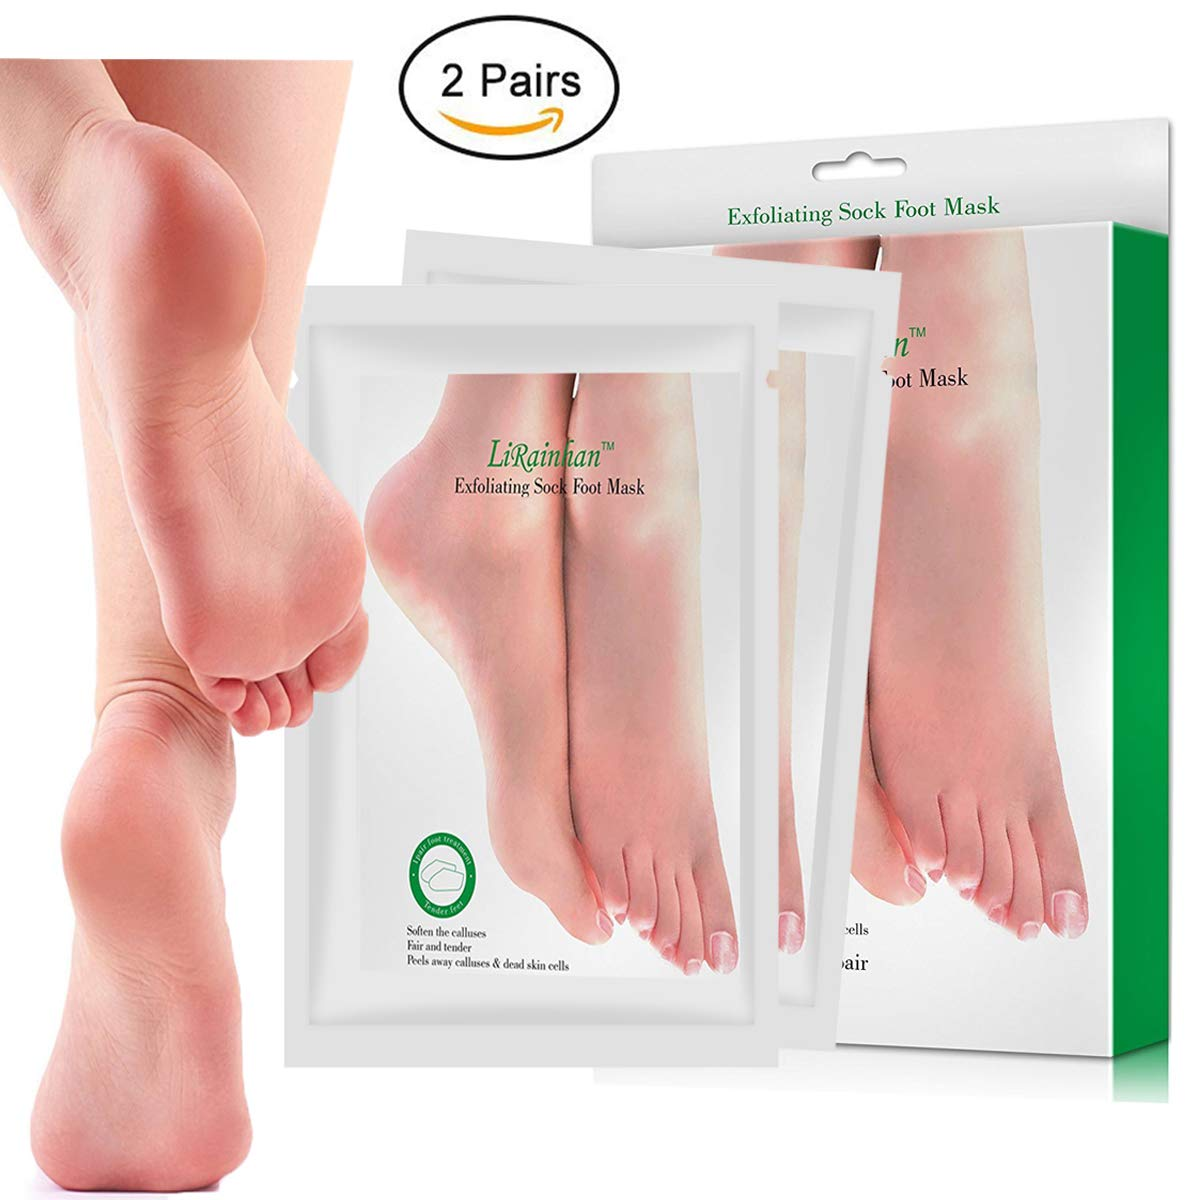 2 Pairs Exfoliant Foot Peel Mask for Soft Feet in 3-7 Days, Exfoliating Booties for Peeling Off Calluses & Dead Skin, Baby Your feet, for Men & Women (Olive) LiRainhan